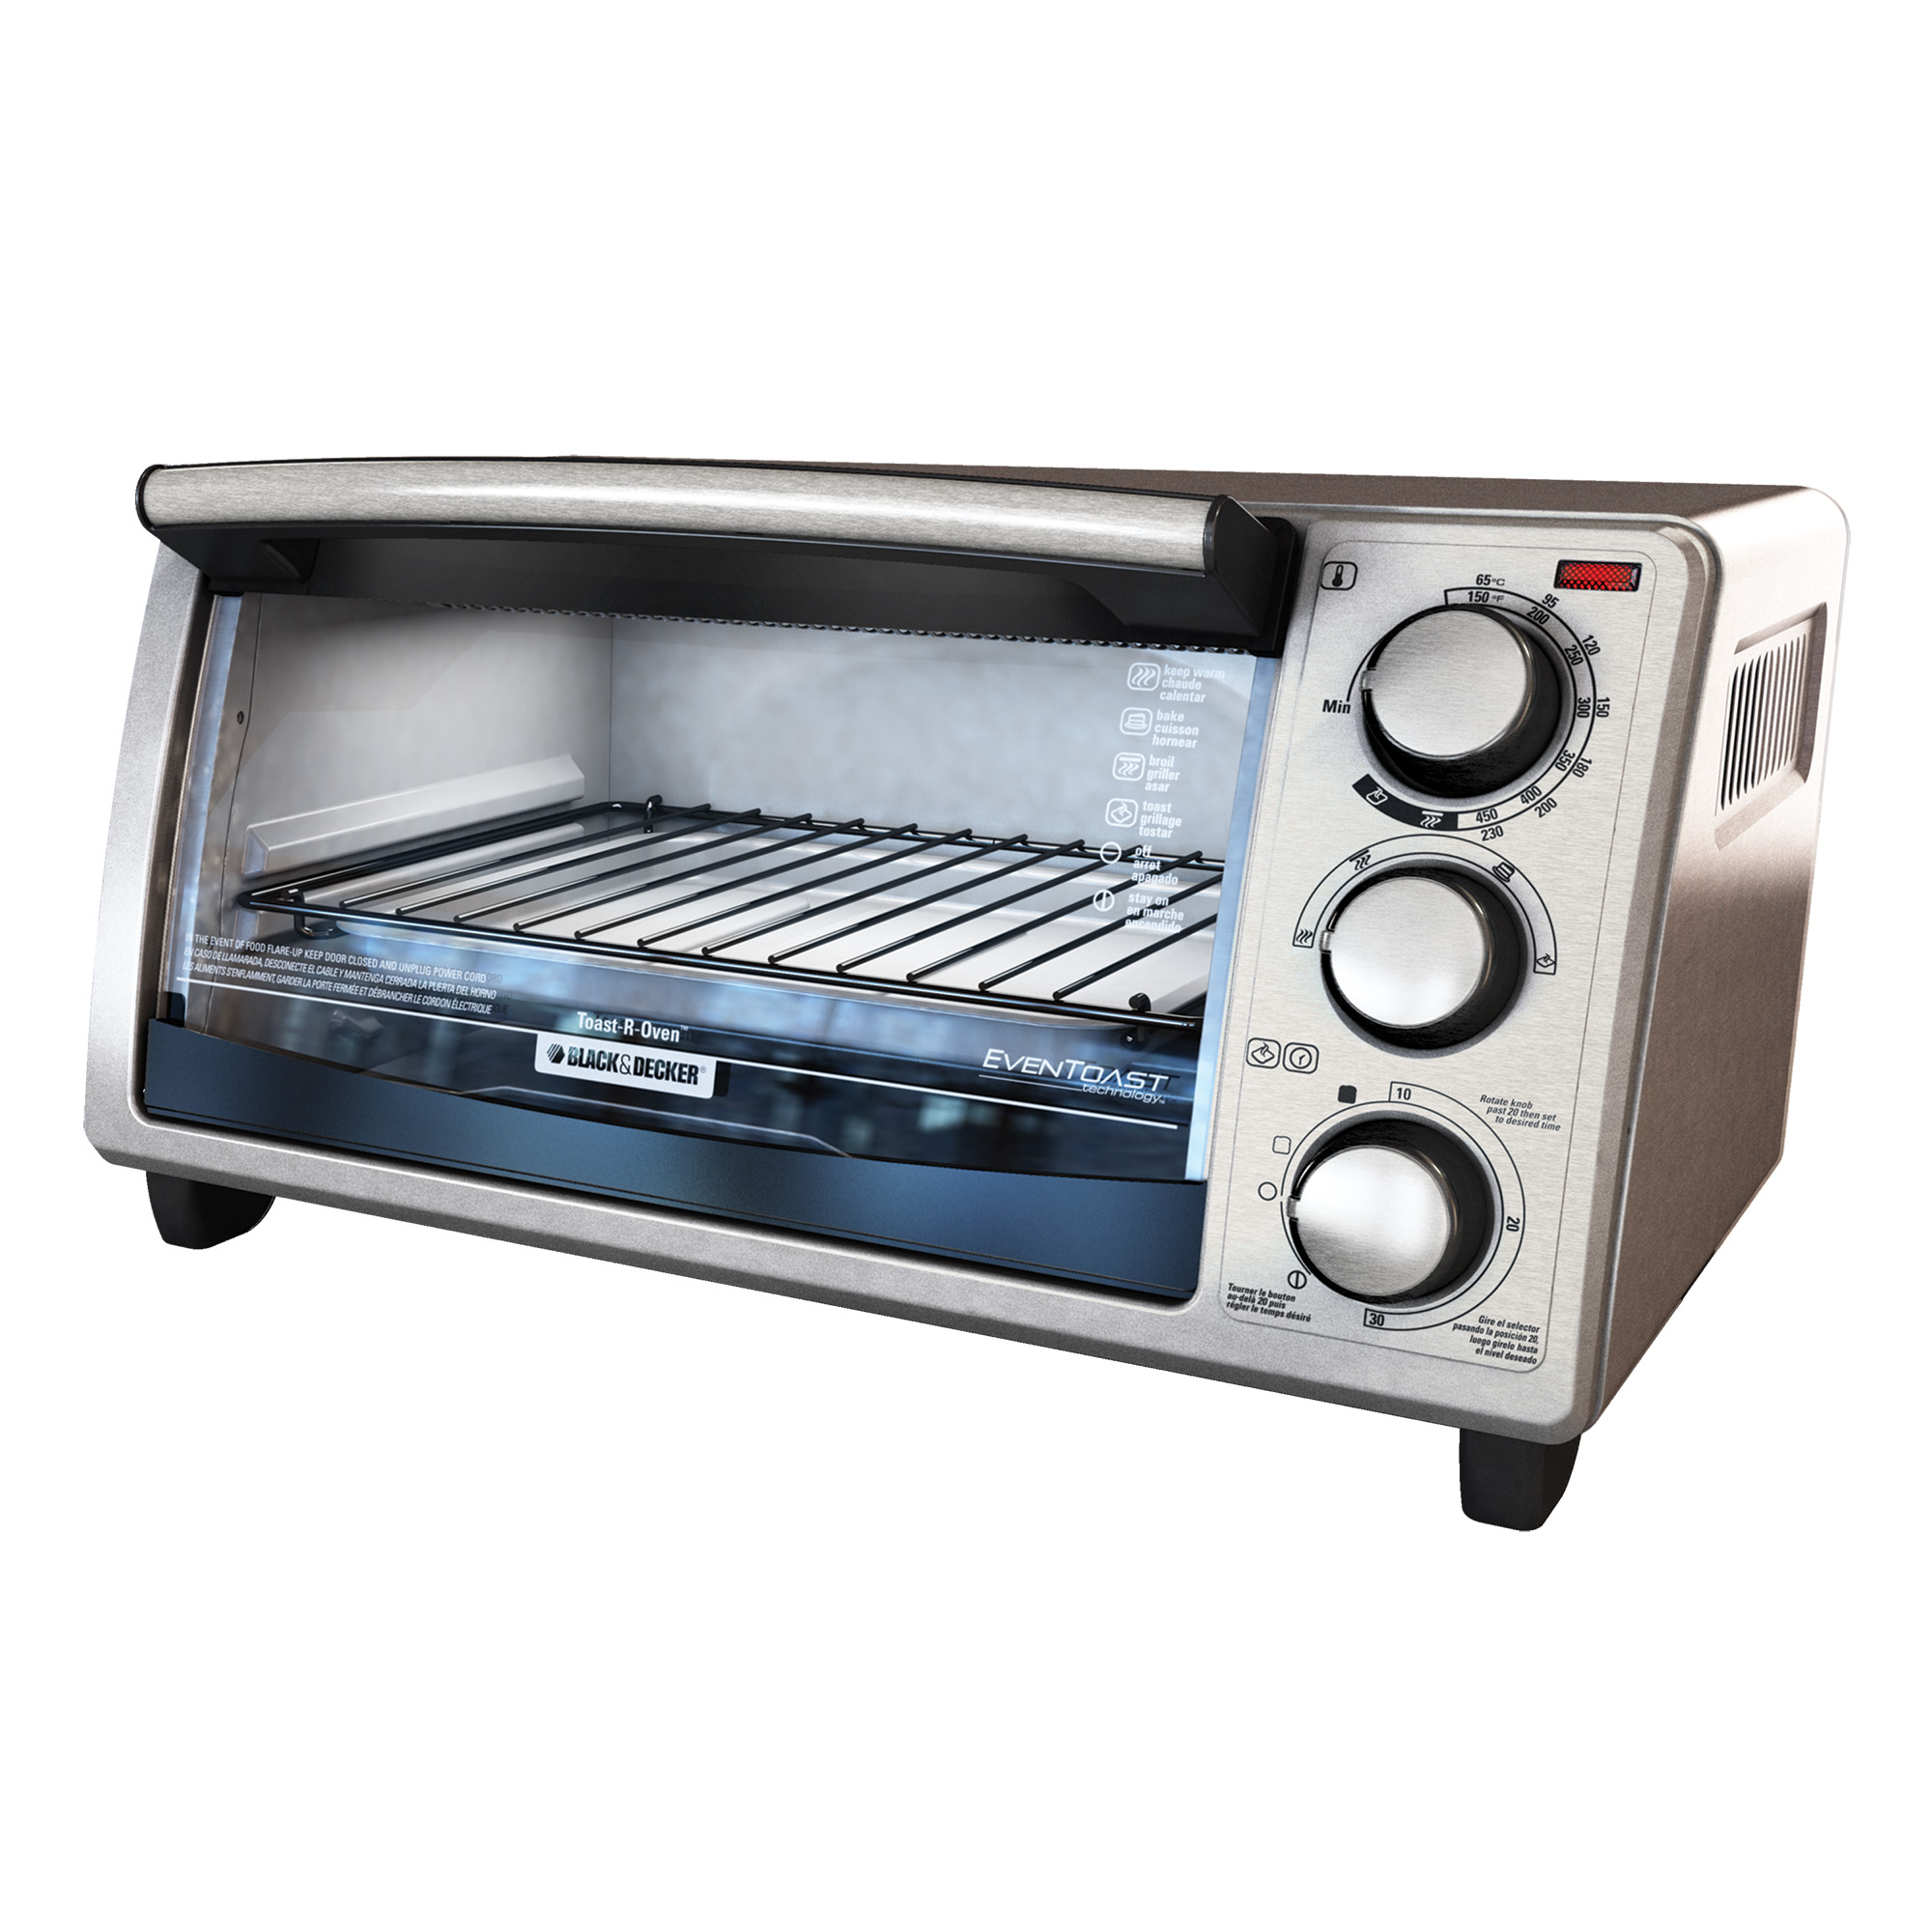 BLACK+DECKER 4-Slice Toaster Oven, Stainless Steel, TO1373SSD